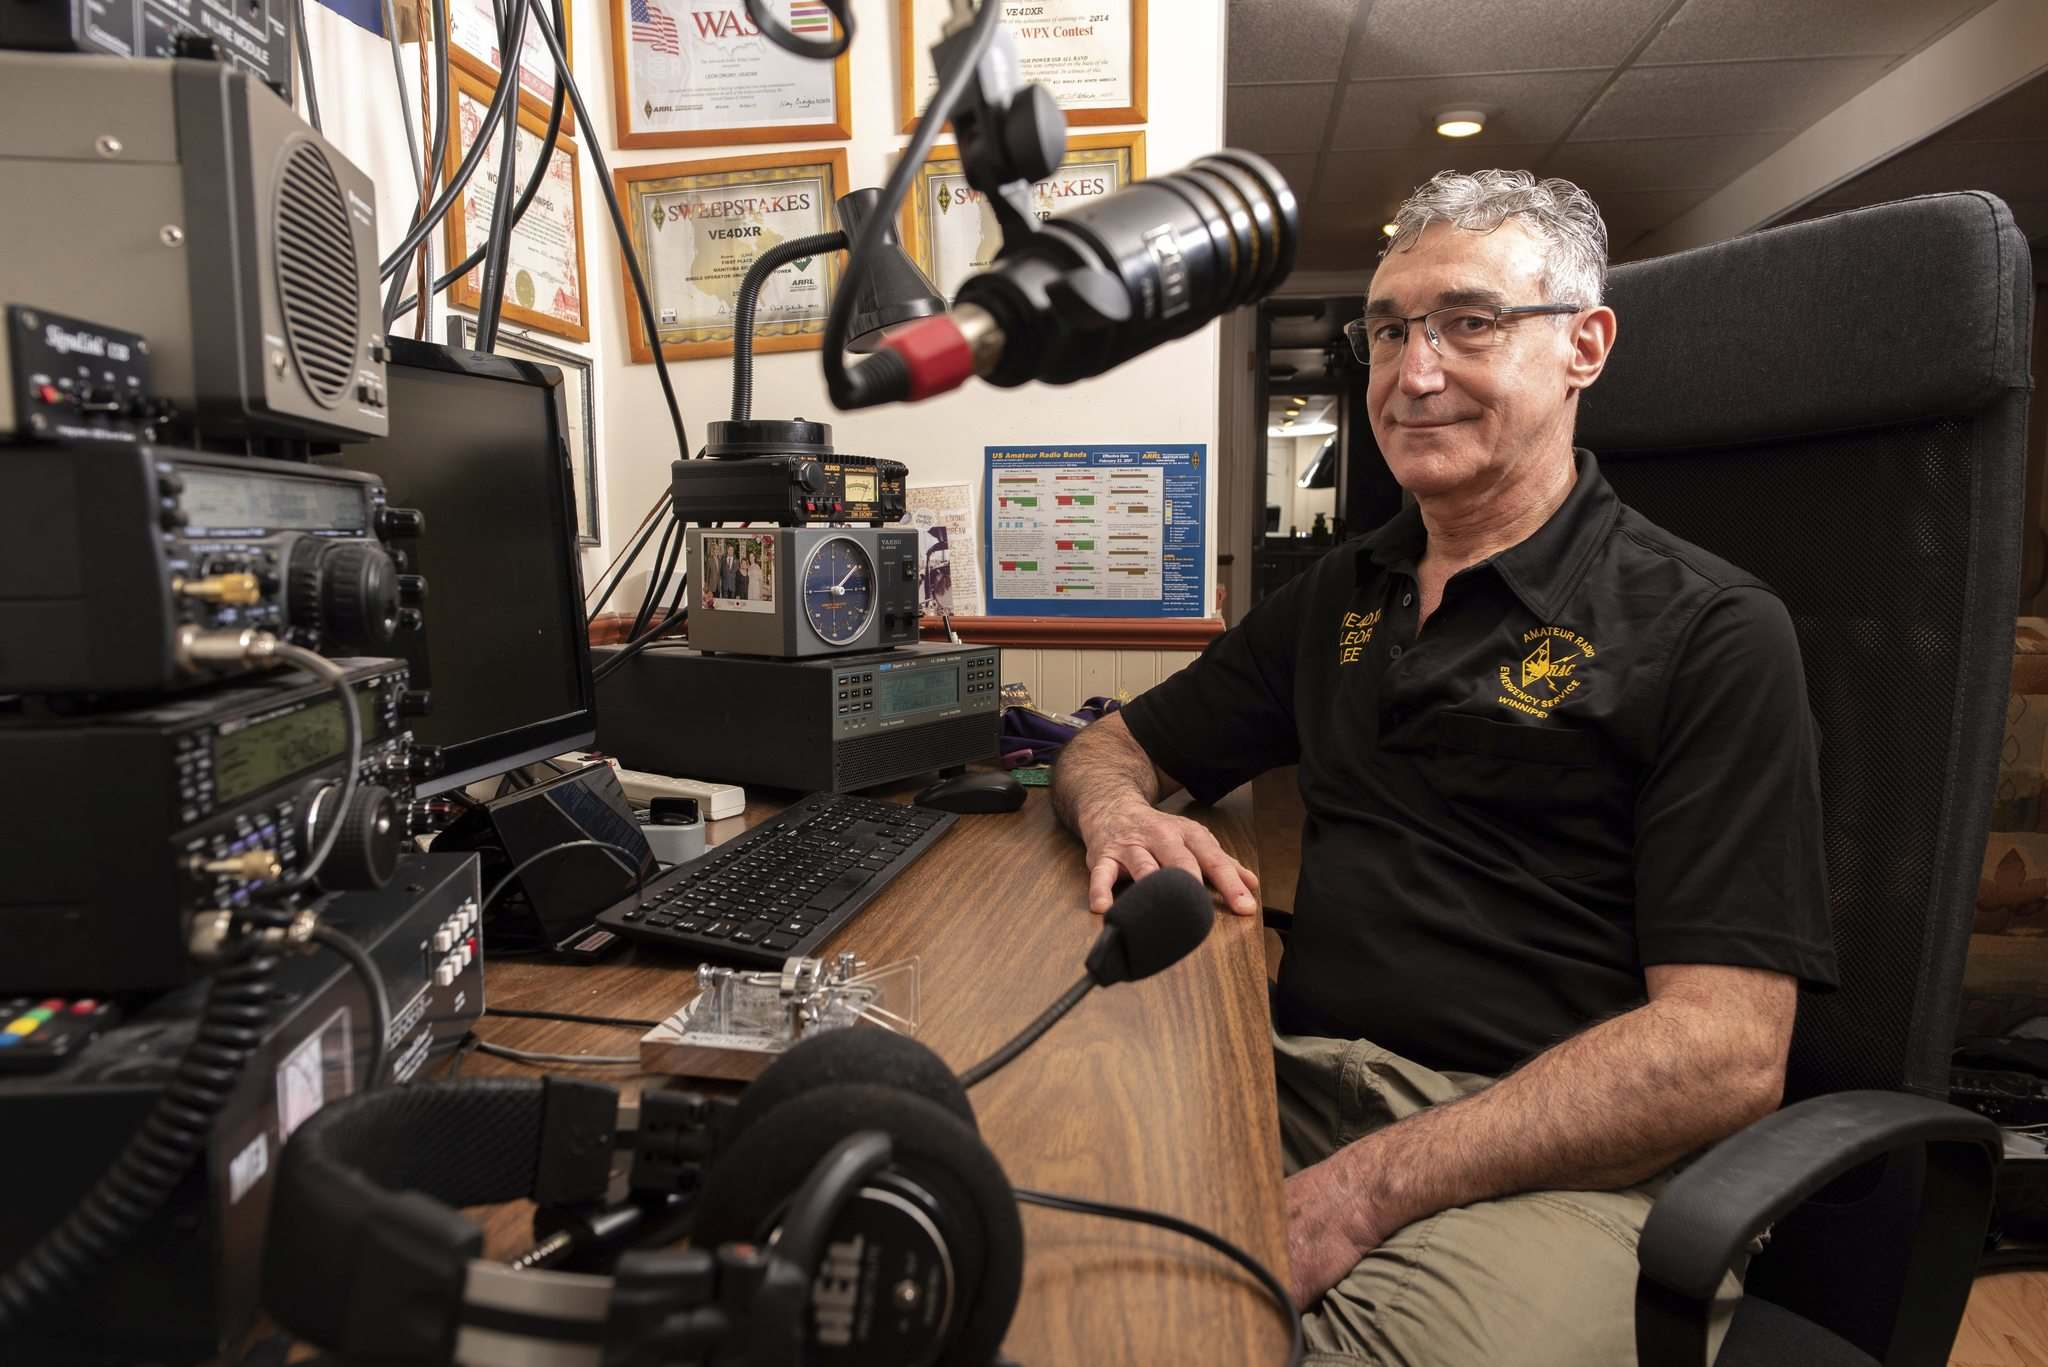 Leor Drory enjoys working at contacting as many countries and other national entities as possible, a pursuit known as DXing, from his Winnipeg ham radio station.